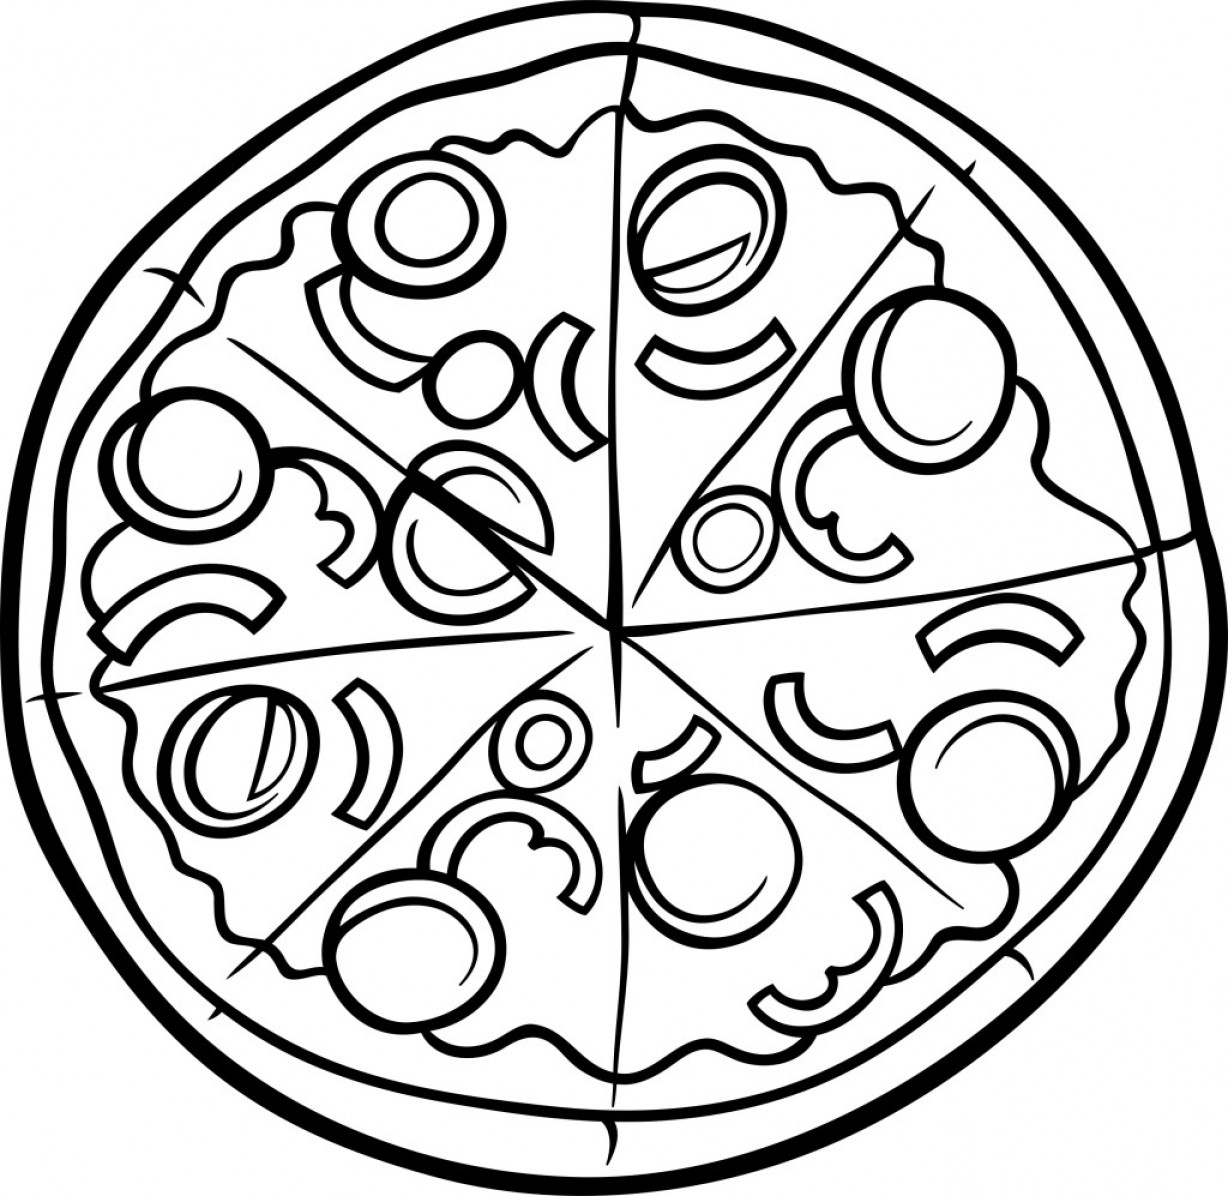 30+ Brilliant Photo of Pizza Coloring Pages